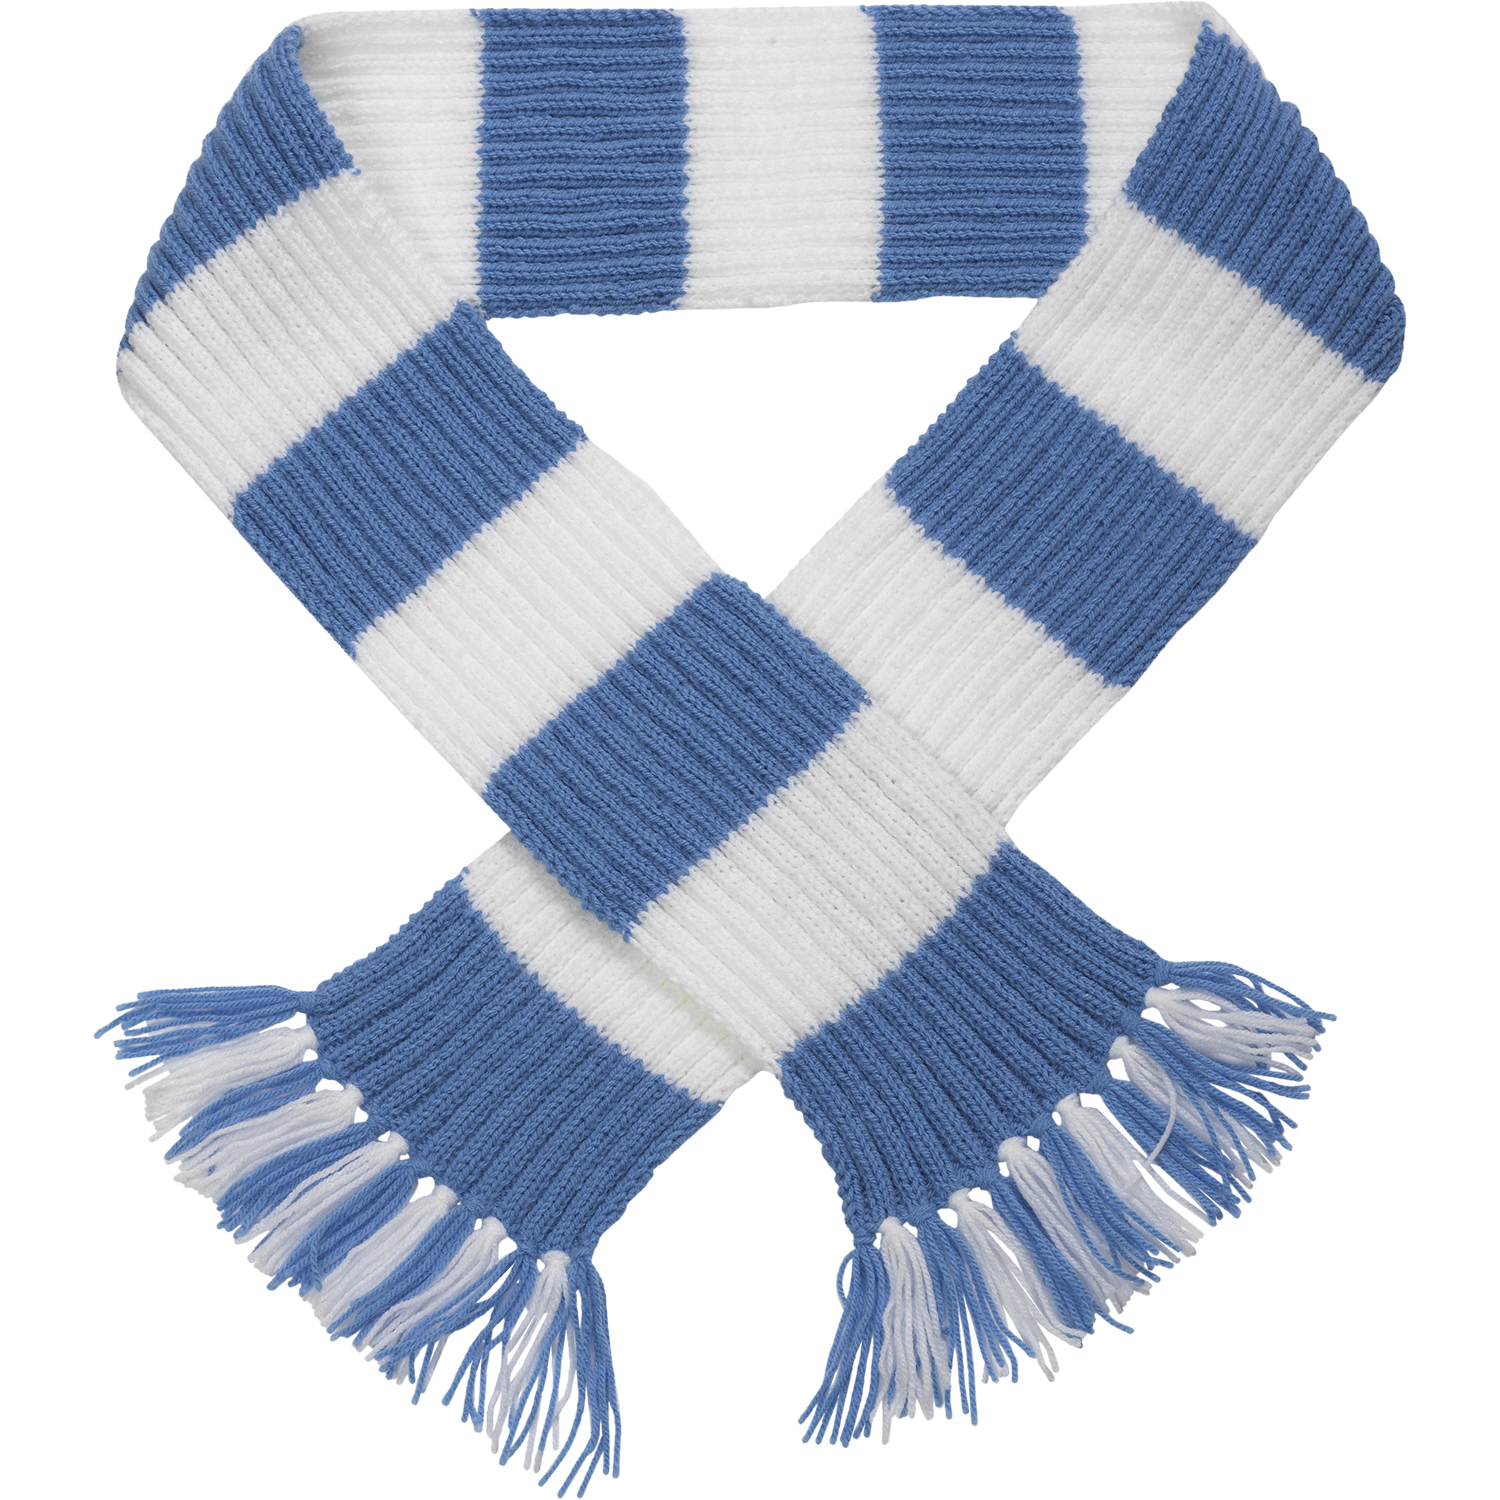 Knitting Pattern With Wool : Craft Hobby Knitted Scarf Kit Football & Rugby DK Double Knitting Pattern...